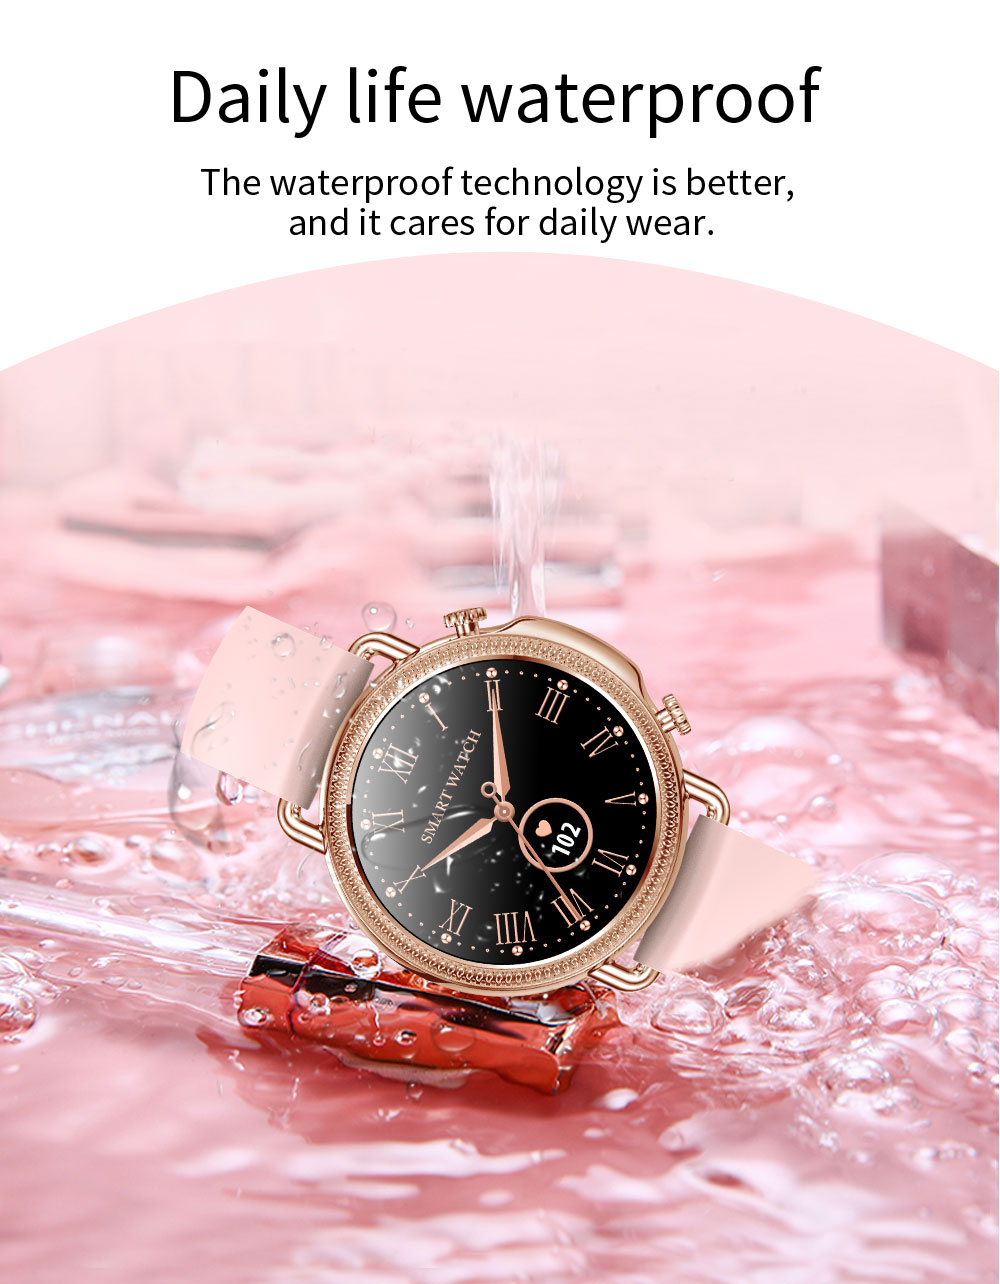 H42362cfbe8d04e15a64bc3f4732d4f69h 2021 Women Smart Watch 1.28 inch HD Screen IP67 Waterproof Lady's Watches Body Temperature Heart Rate Monitor PK V23